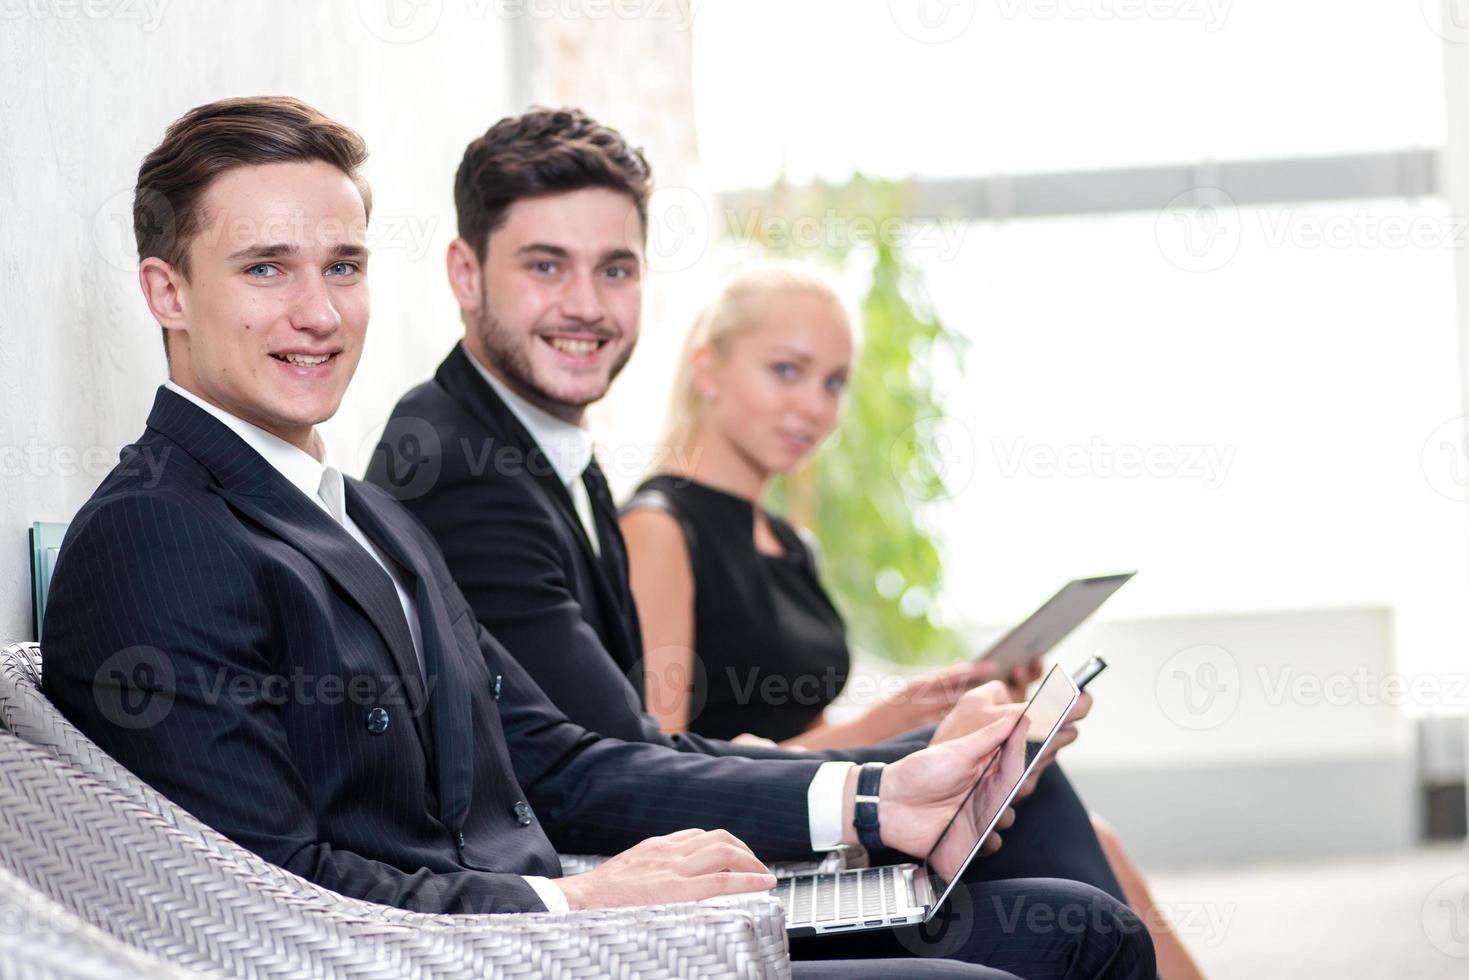 Job candidates. Three people in formalwear waiting in office photo